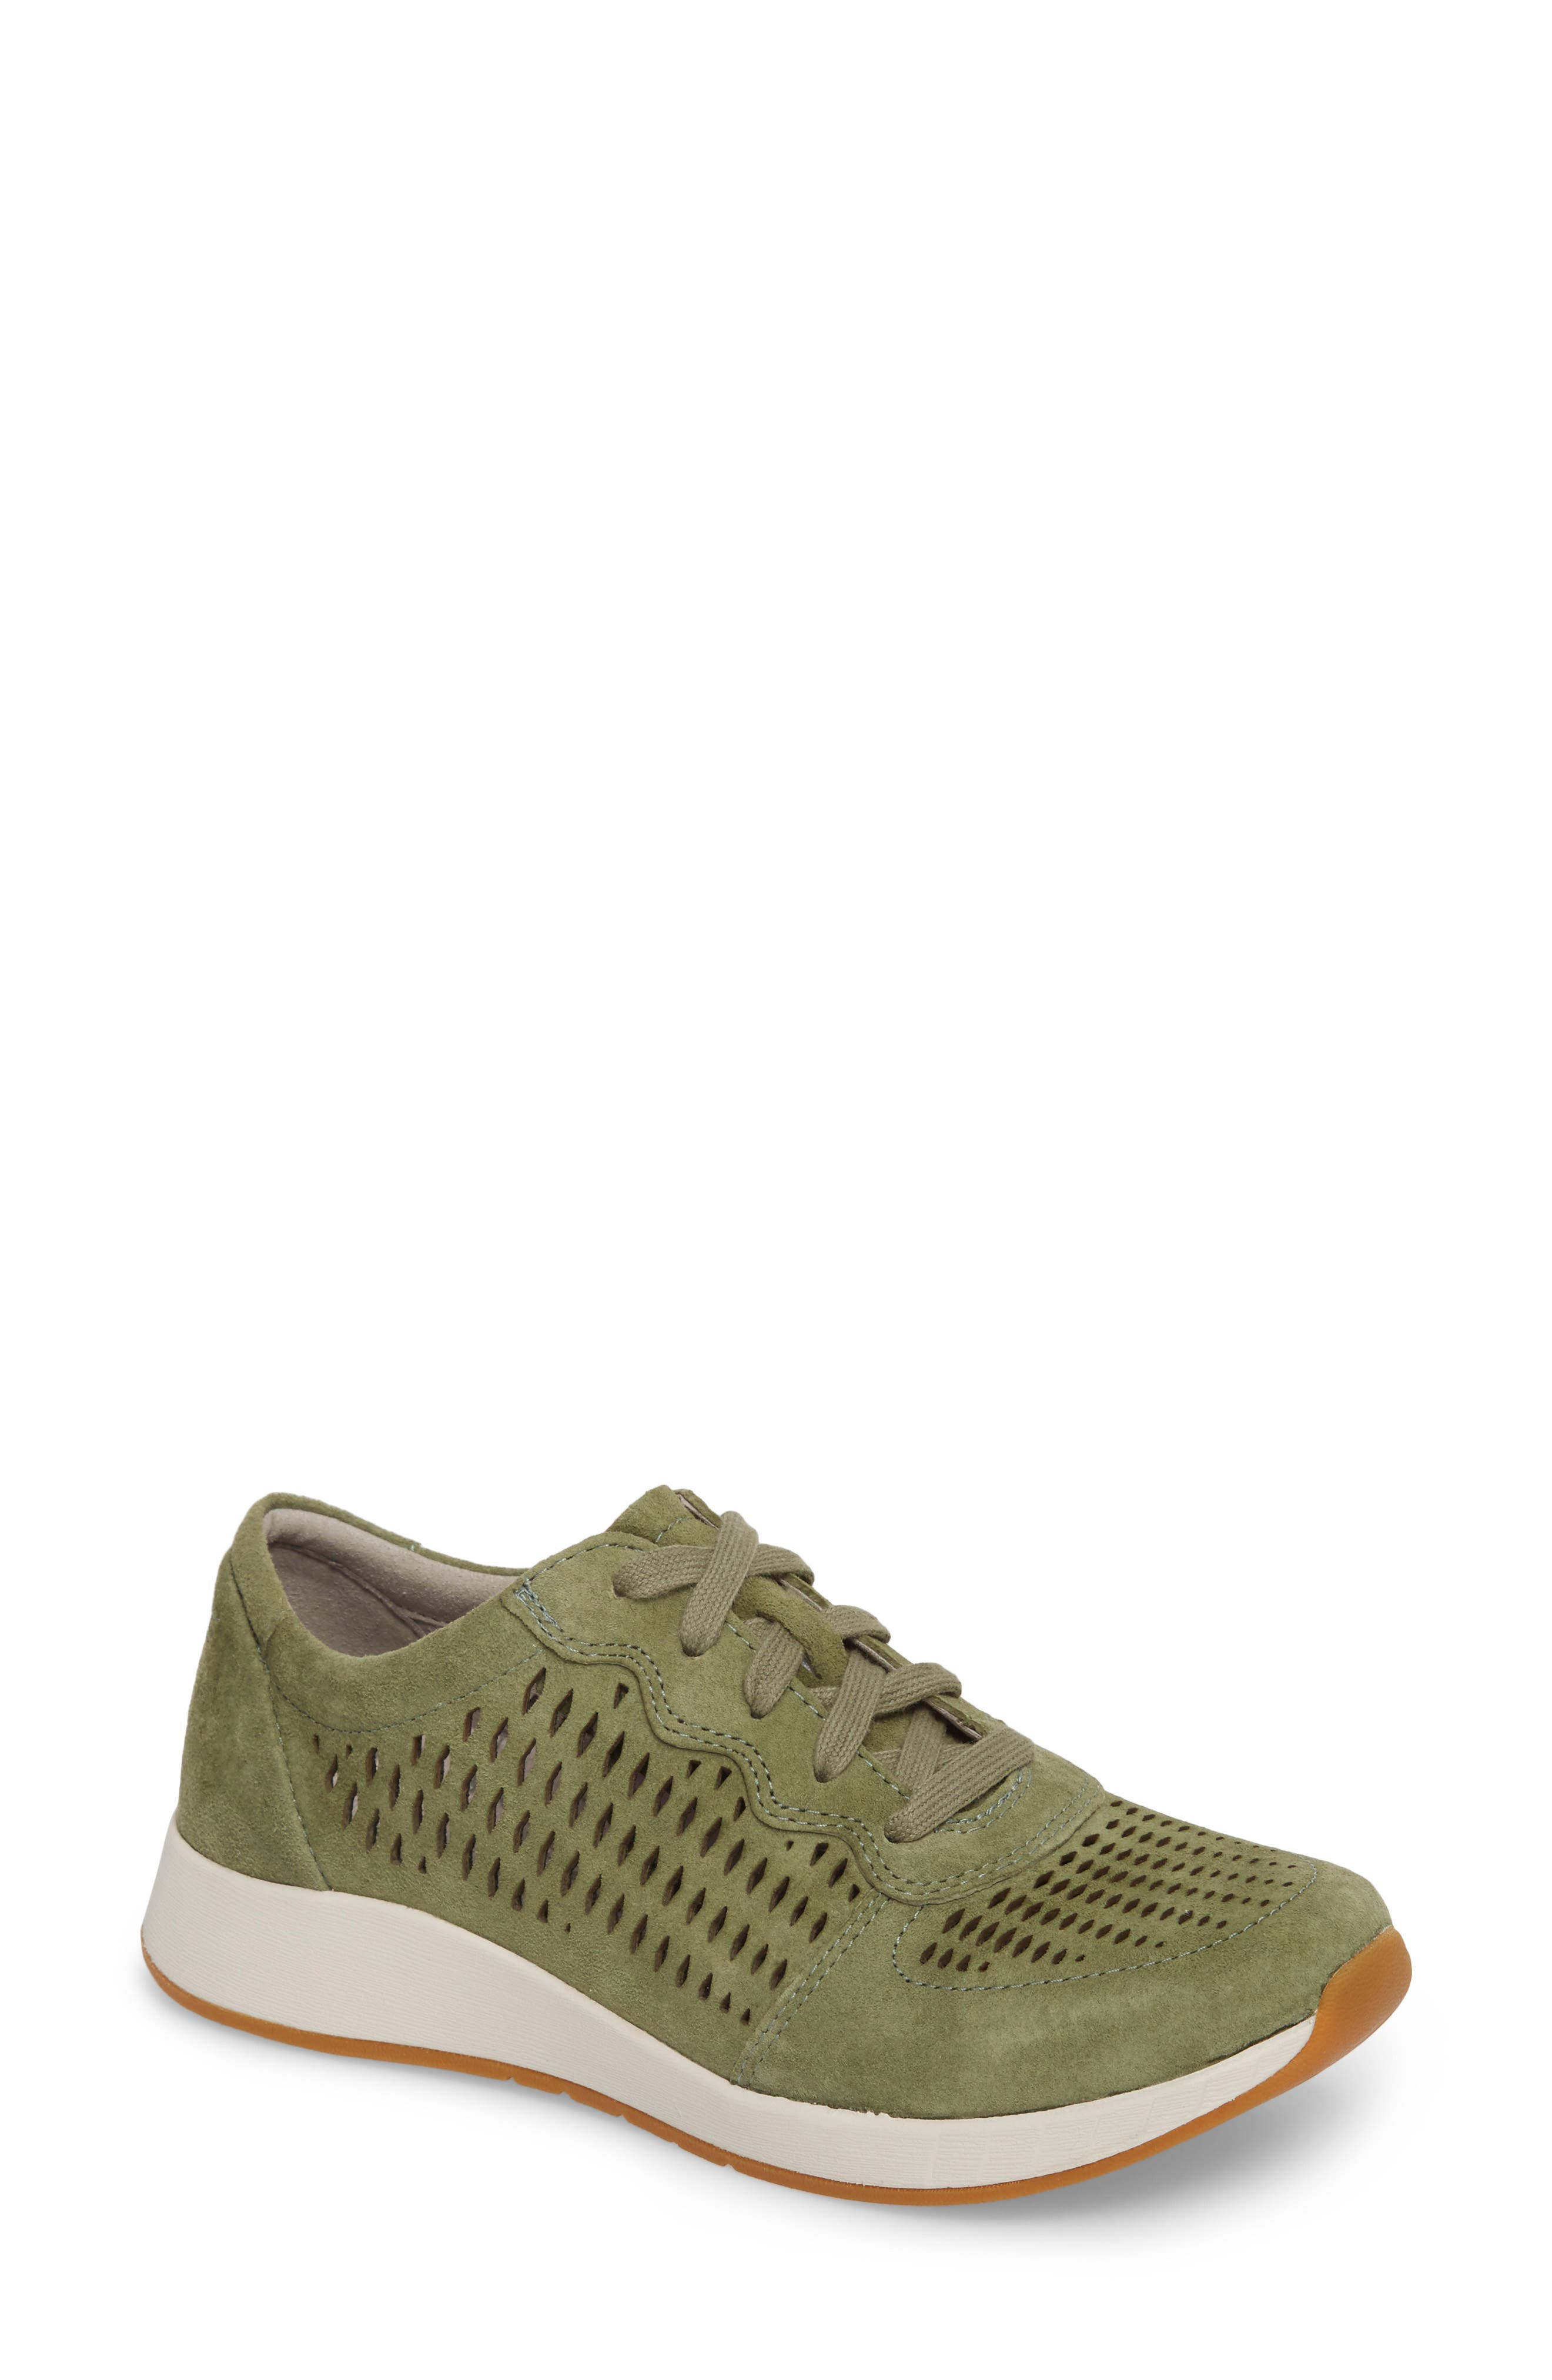 Charlie Perforated Sneaker,                             Main thumbnail 1, color,                             309